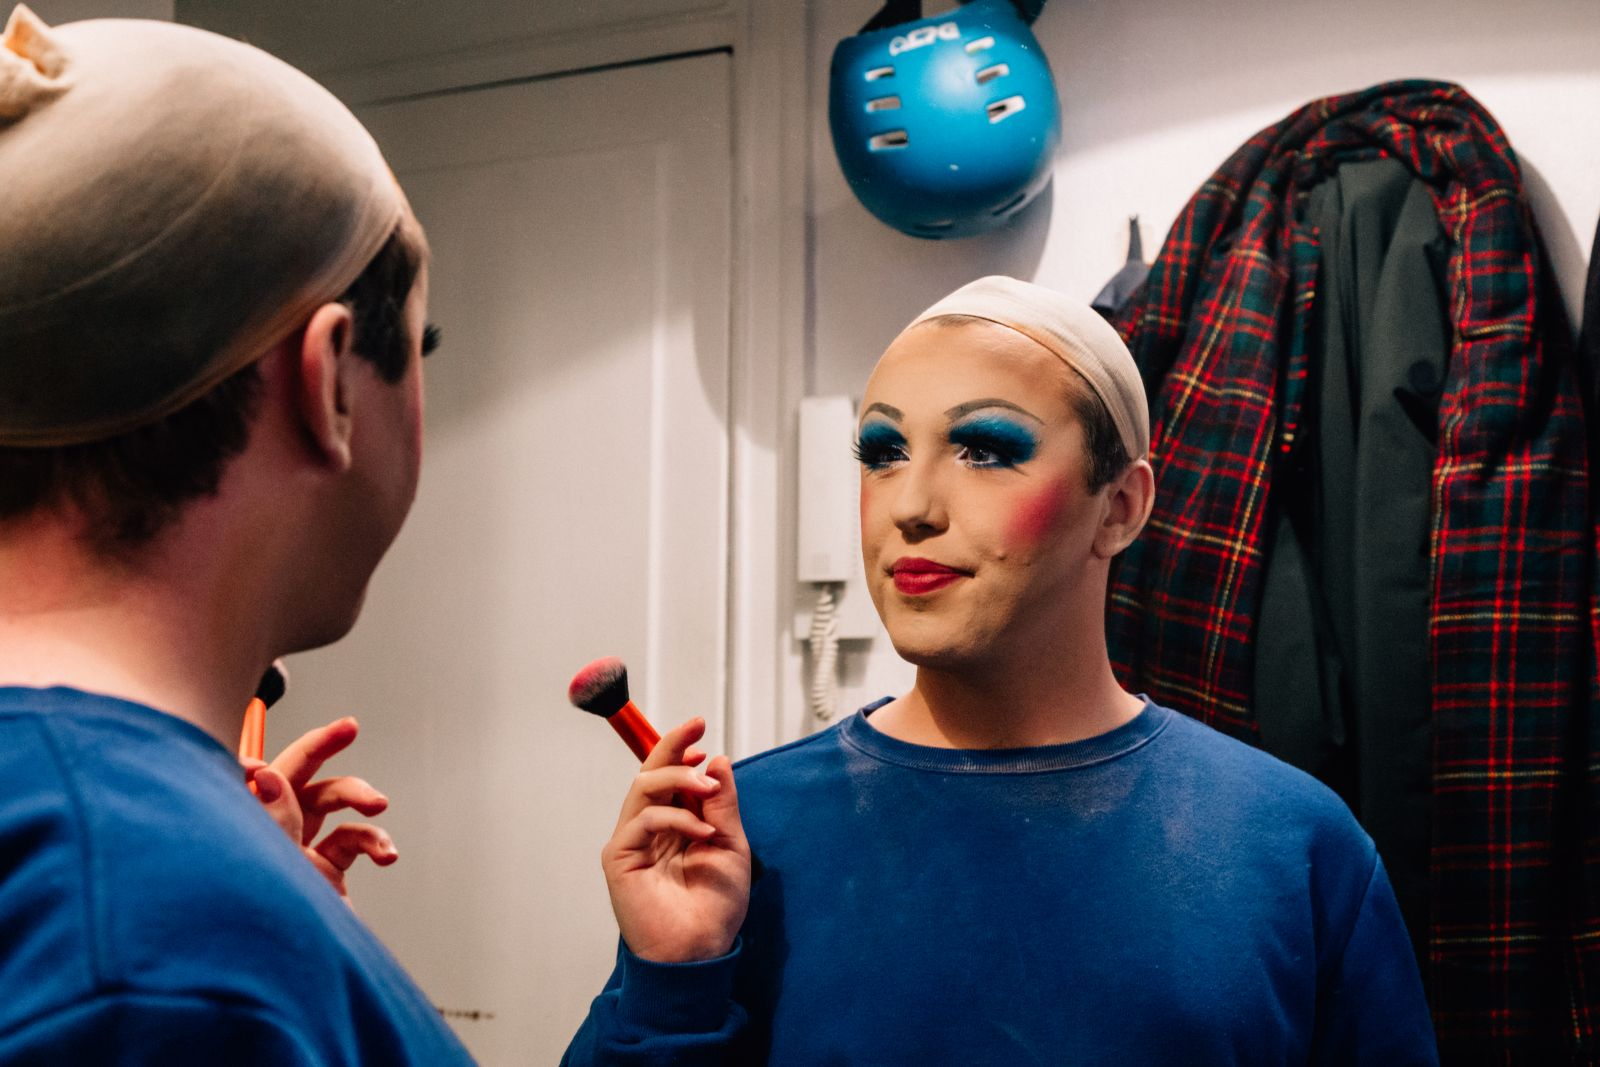 Man with makeup looks into the mirror